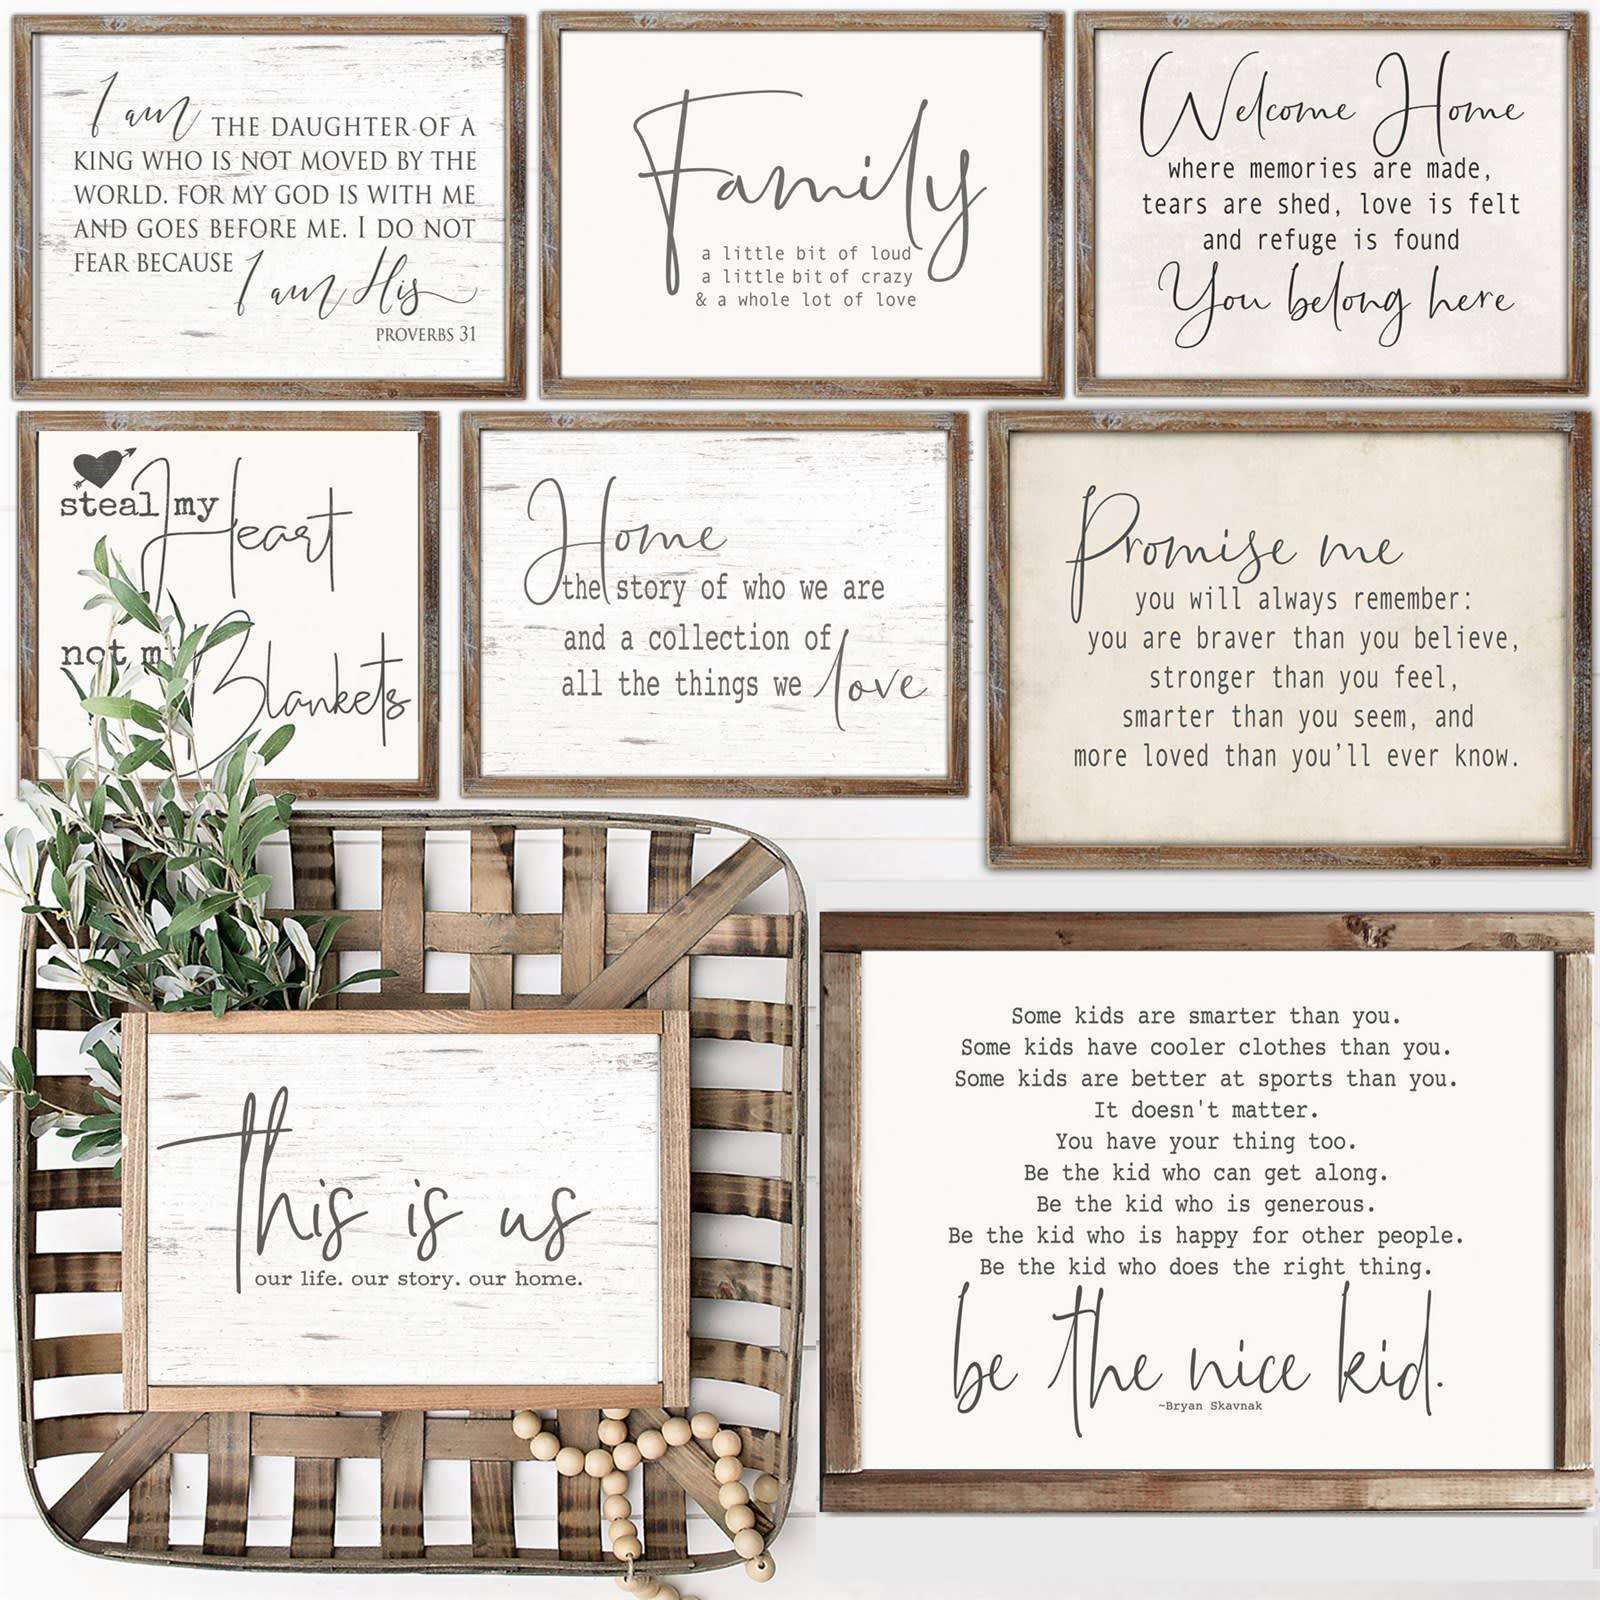 Rustic Chic Farmhouse Prints L 3 Sizes Chic Home Decor Shabby Chic Homes Shabby Chic Decor